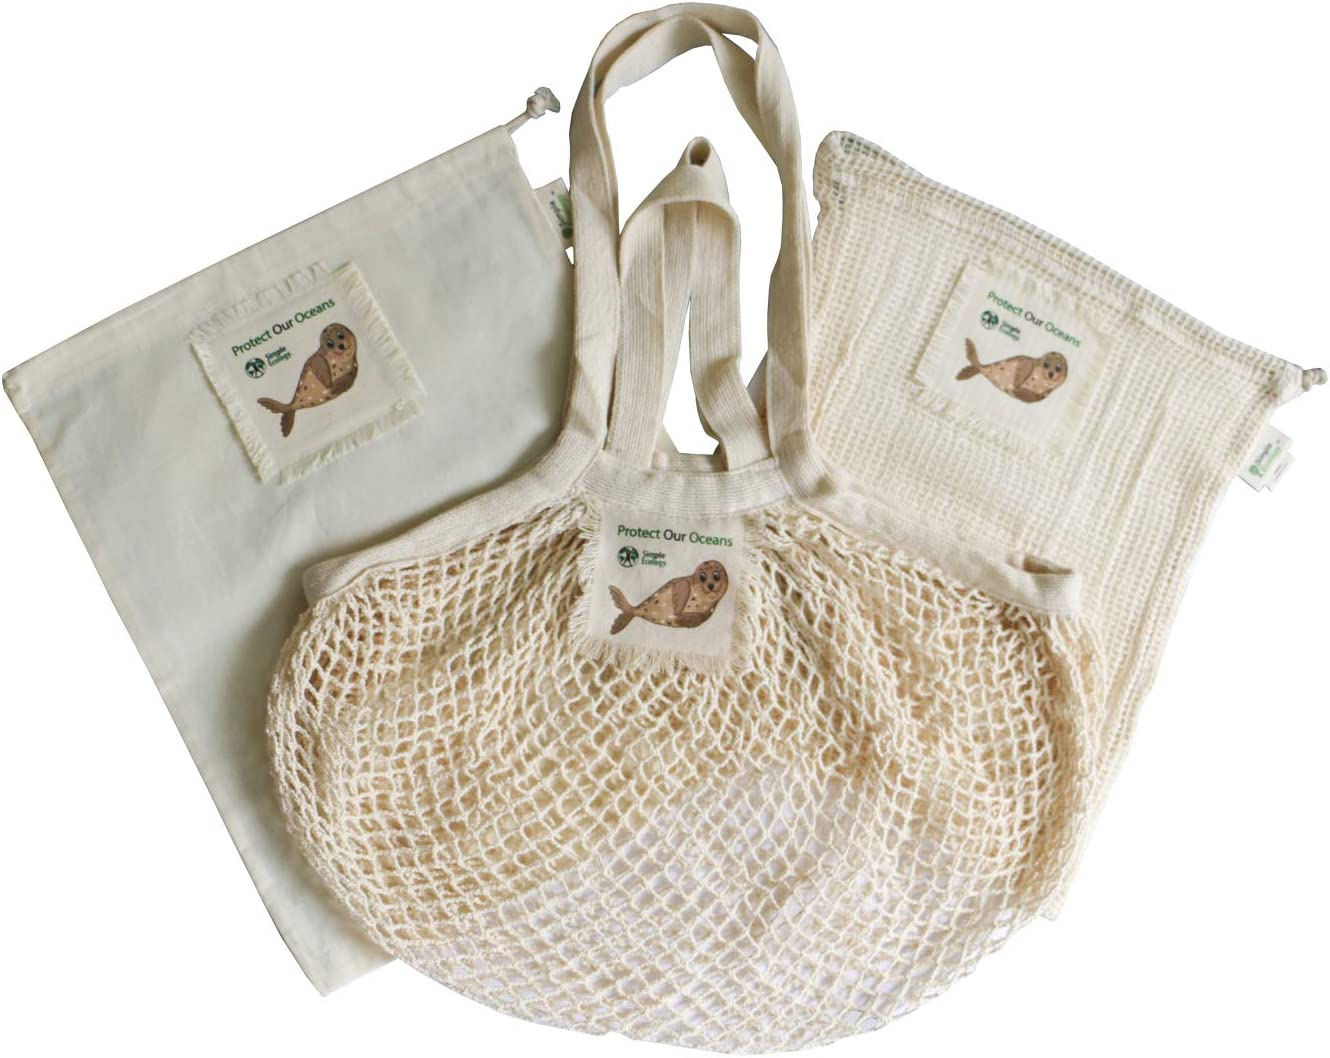 """Protect Our Oceans"" Simple Ecology Organic Cotton Reusable Seal Gift & Starter Set (string produce saver bags, food storage, bulk bin, with tare weight tag and drawstring, waste free)"